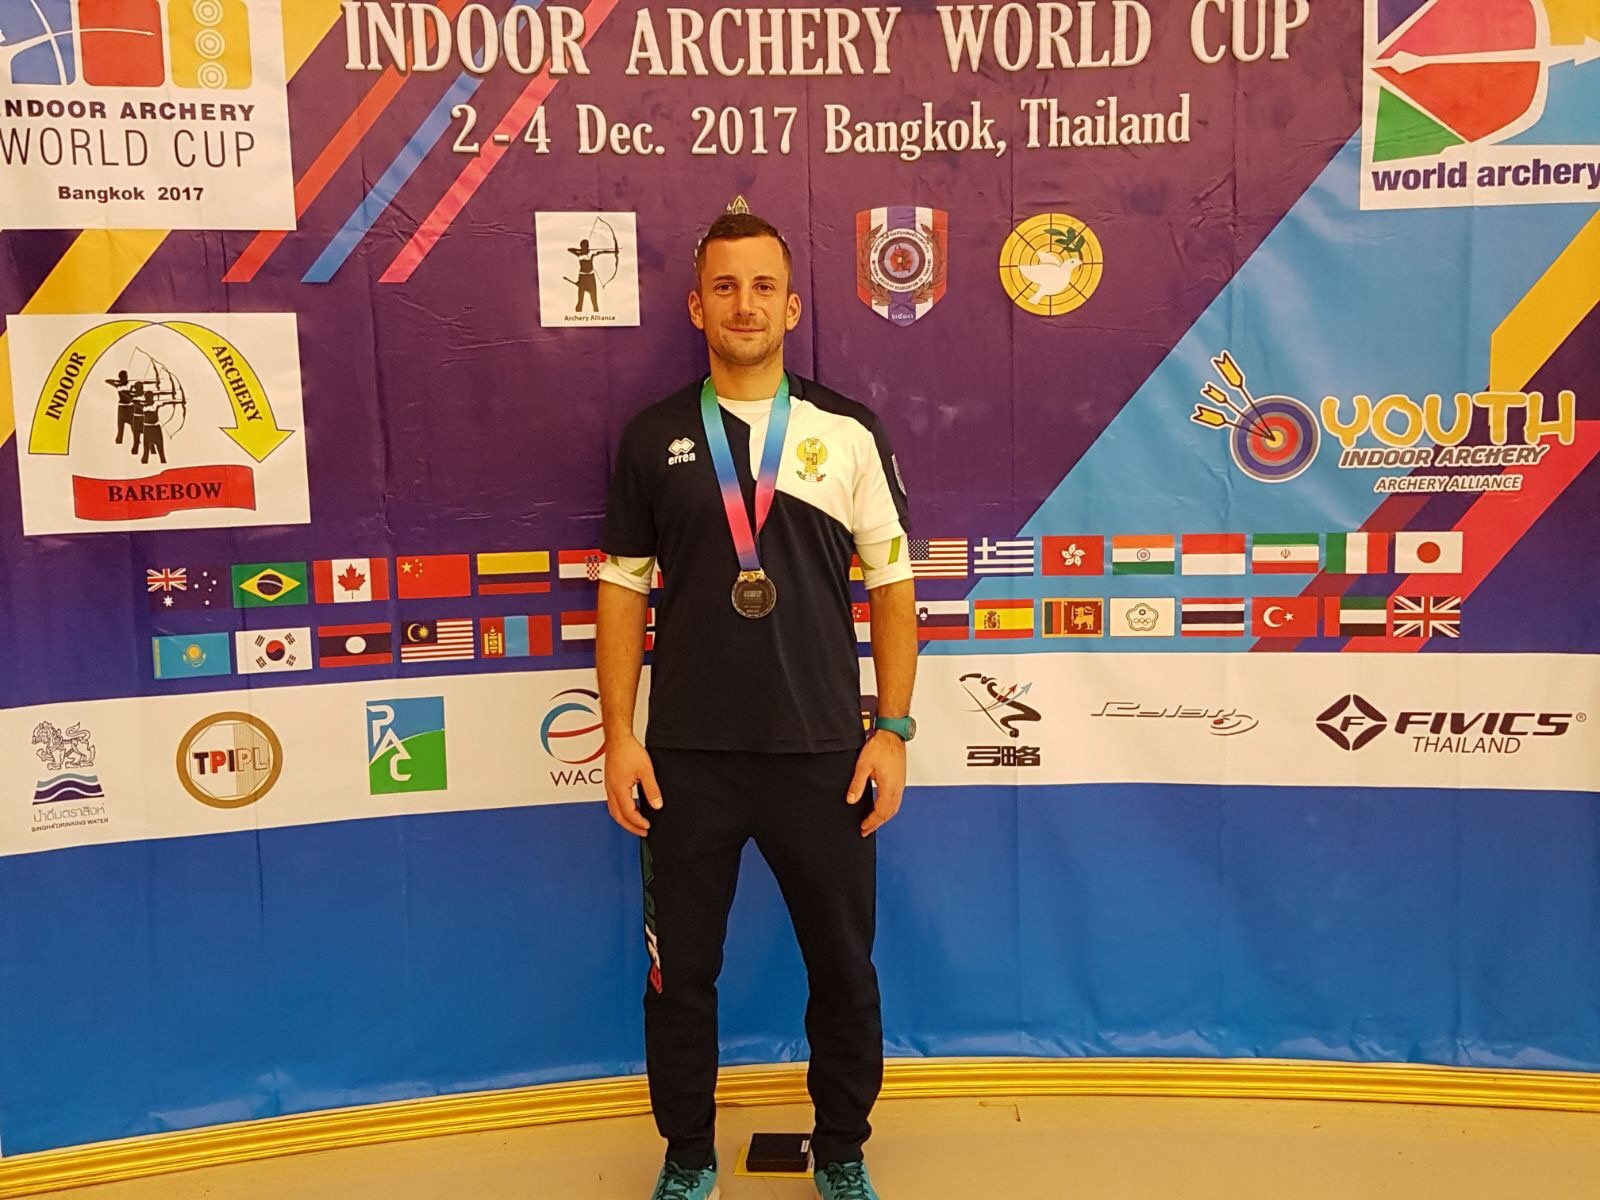 Bangkok hosts the second round of the Indoor Archery World Cup: Matteo Fissore takes silver!